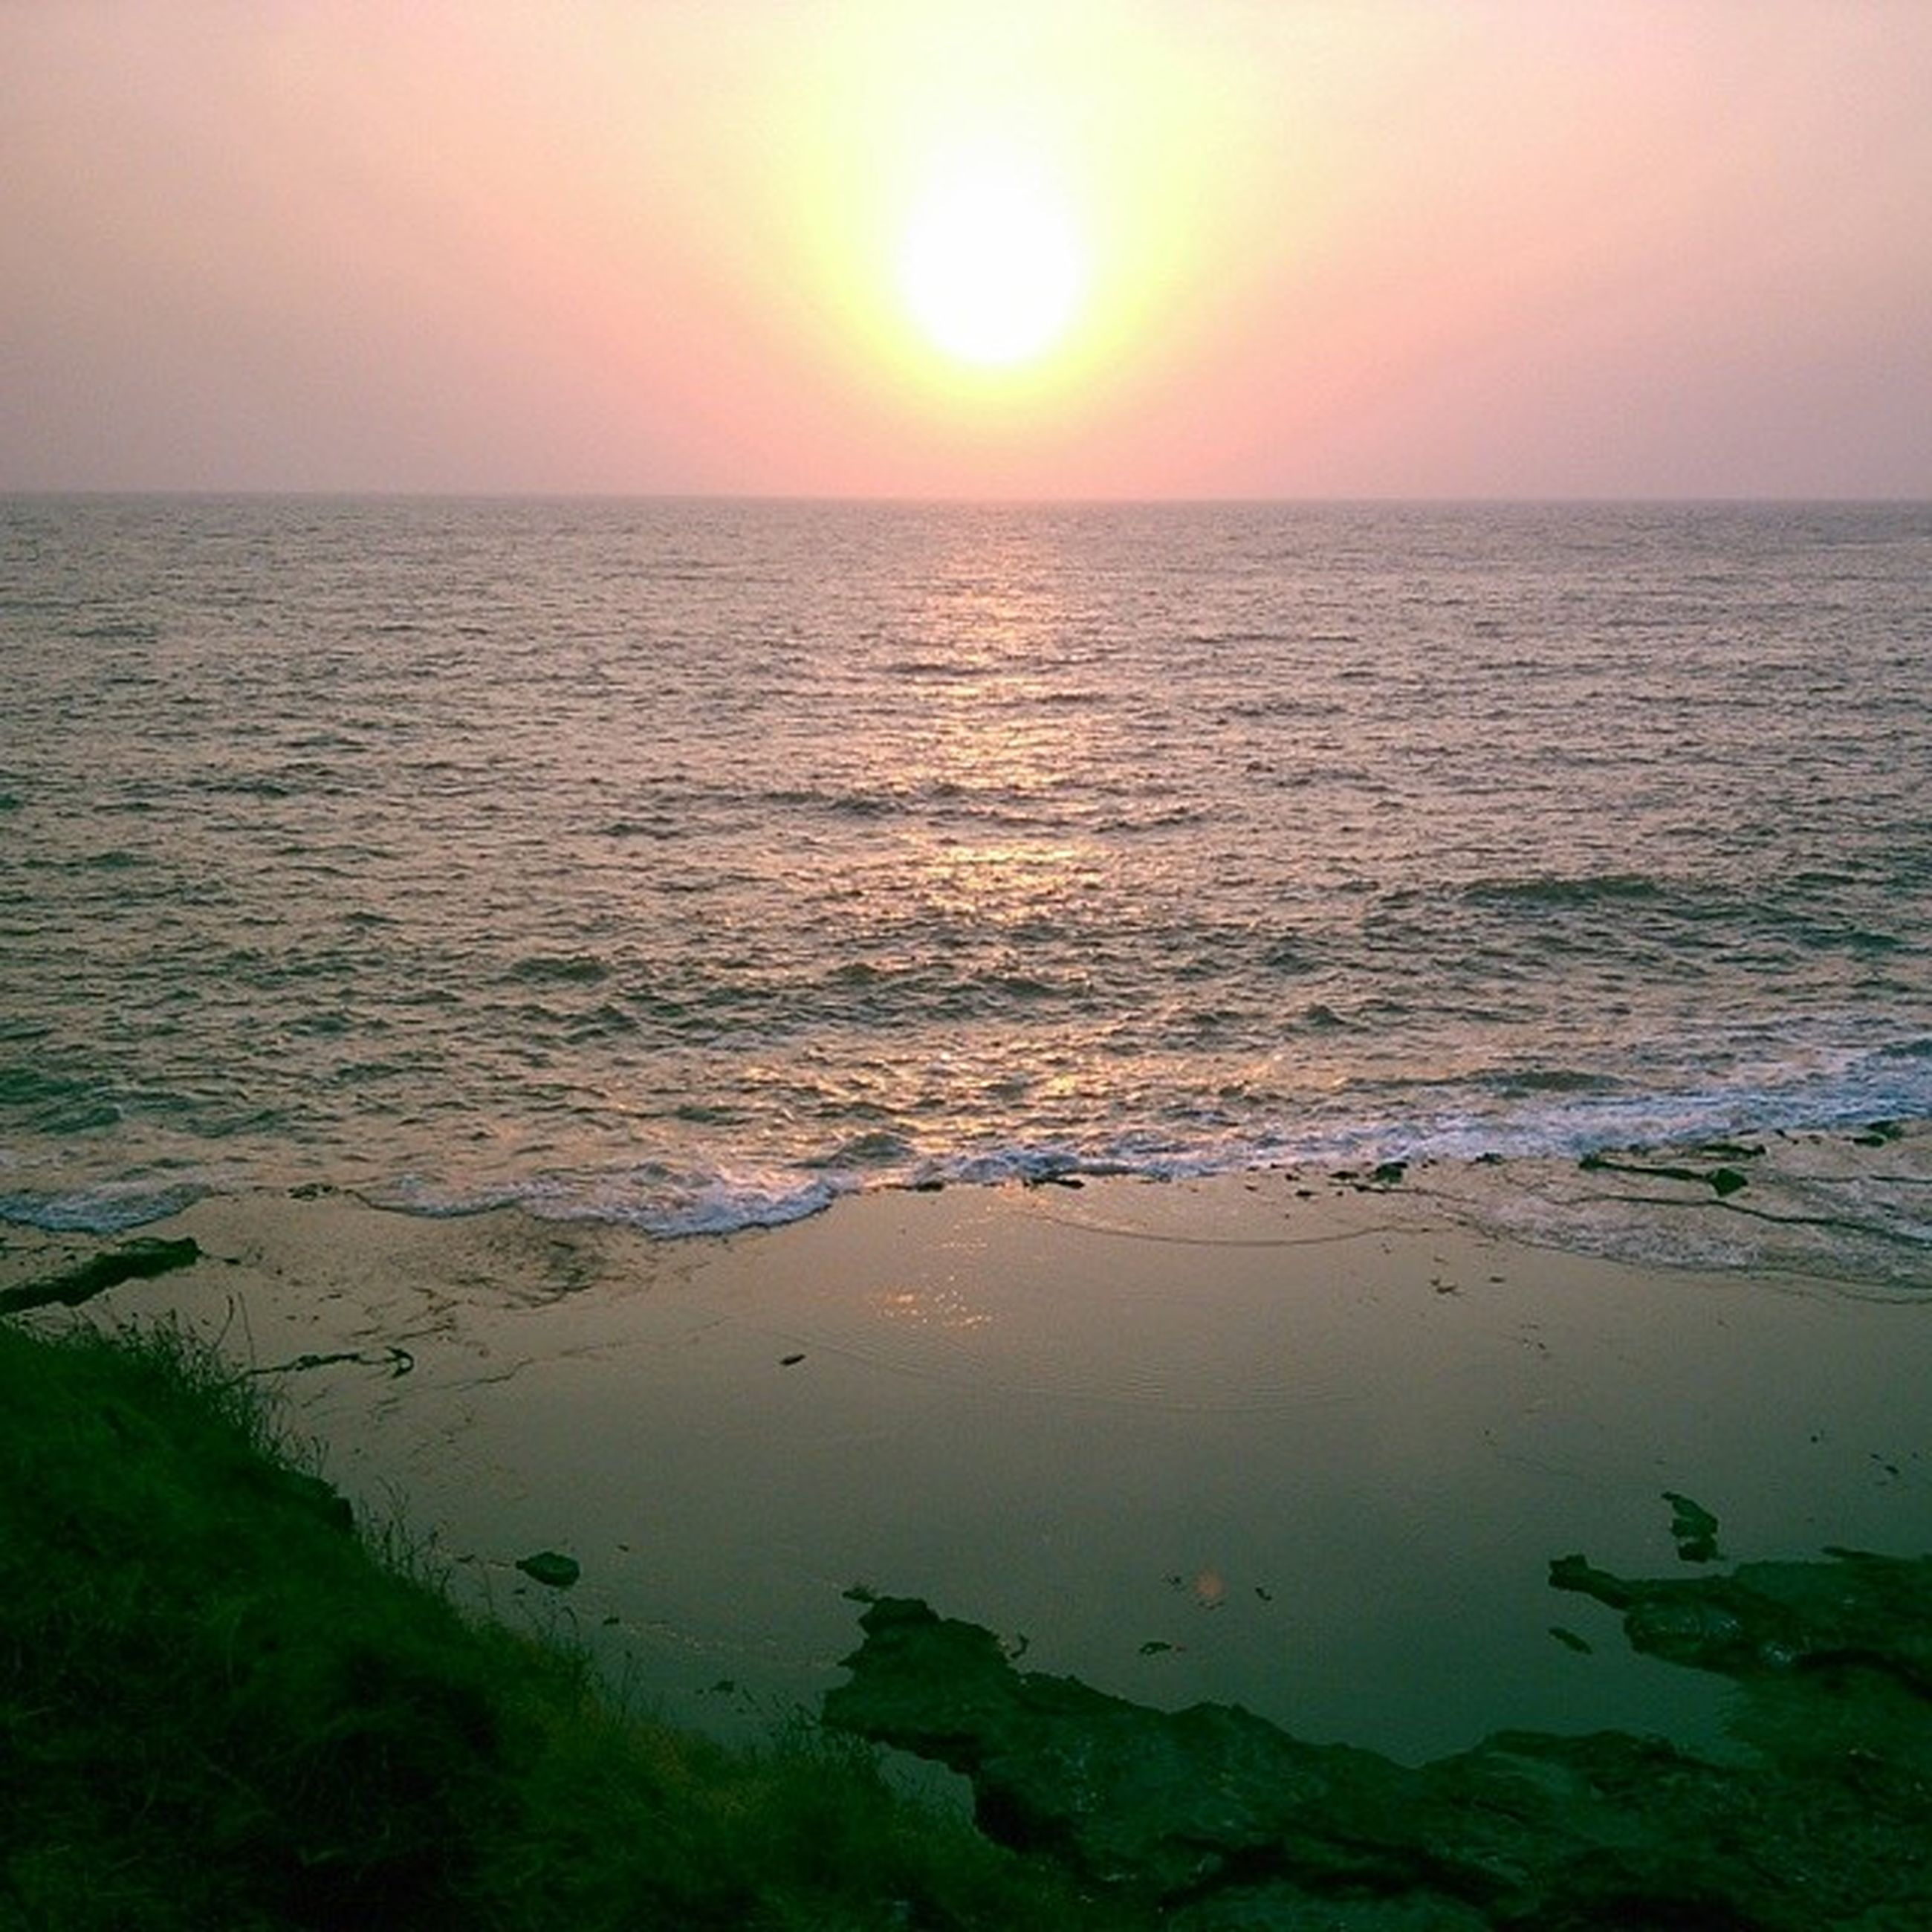 sea, water, horizon over water, sunset, tranquil scene, scenics, tranquility, beauty in nature, sun, reflection, idyllic, nature, beach, seascape, sky, shore, clear sky, orange color, sunlight, rippled